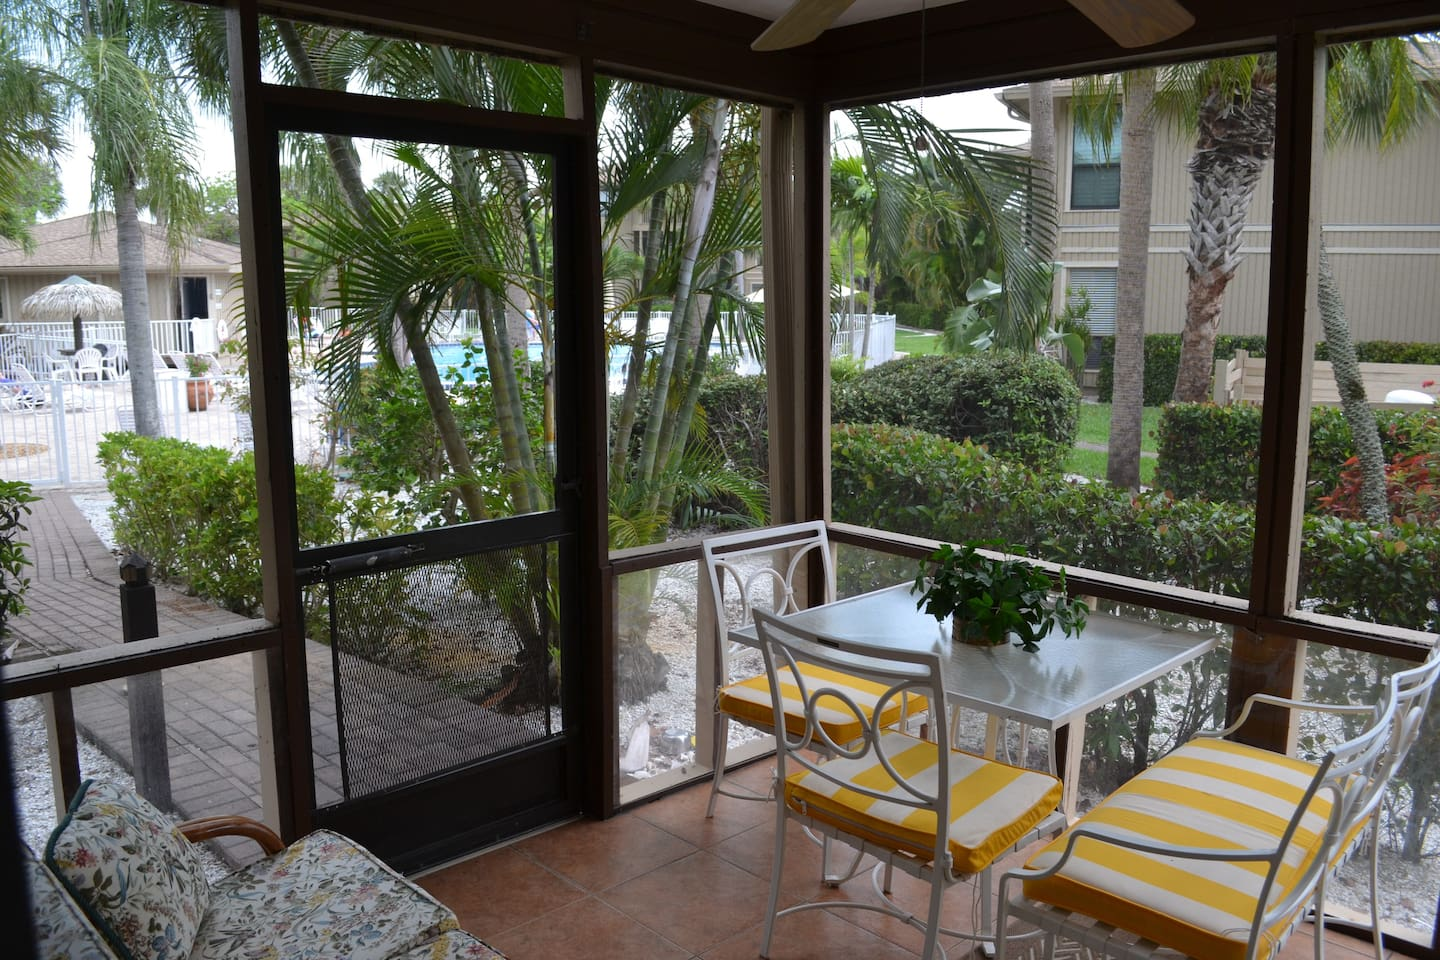 Lovely lanai adjacent to the pool